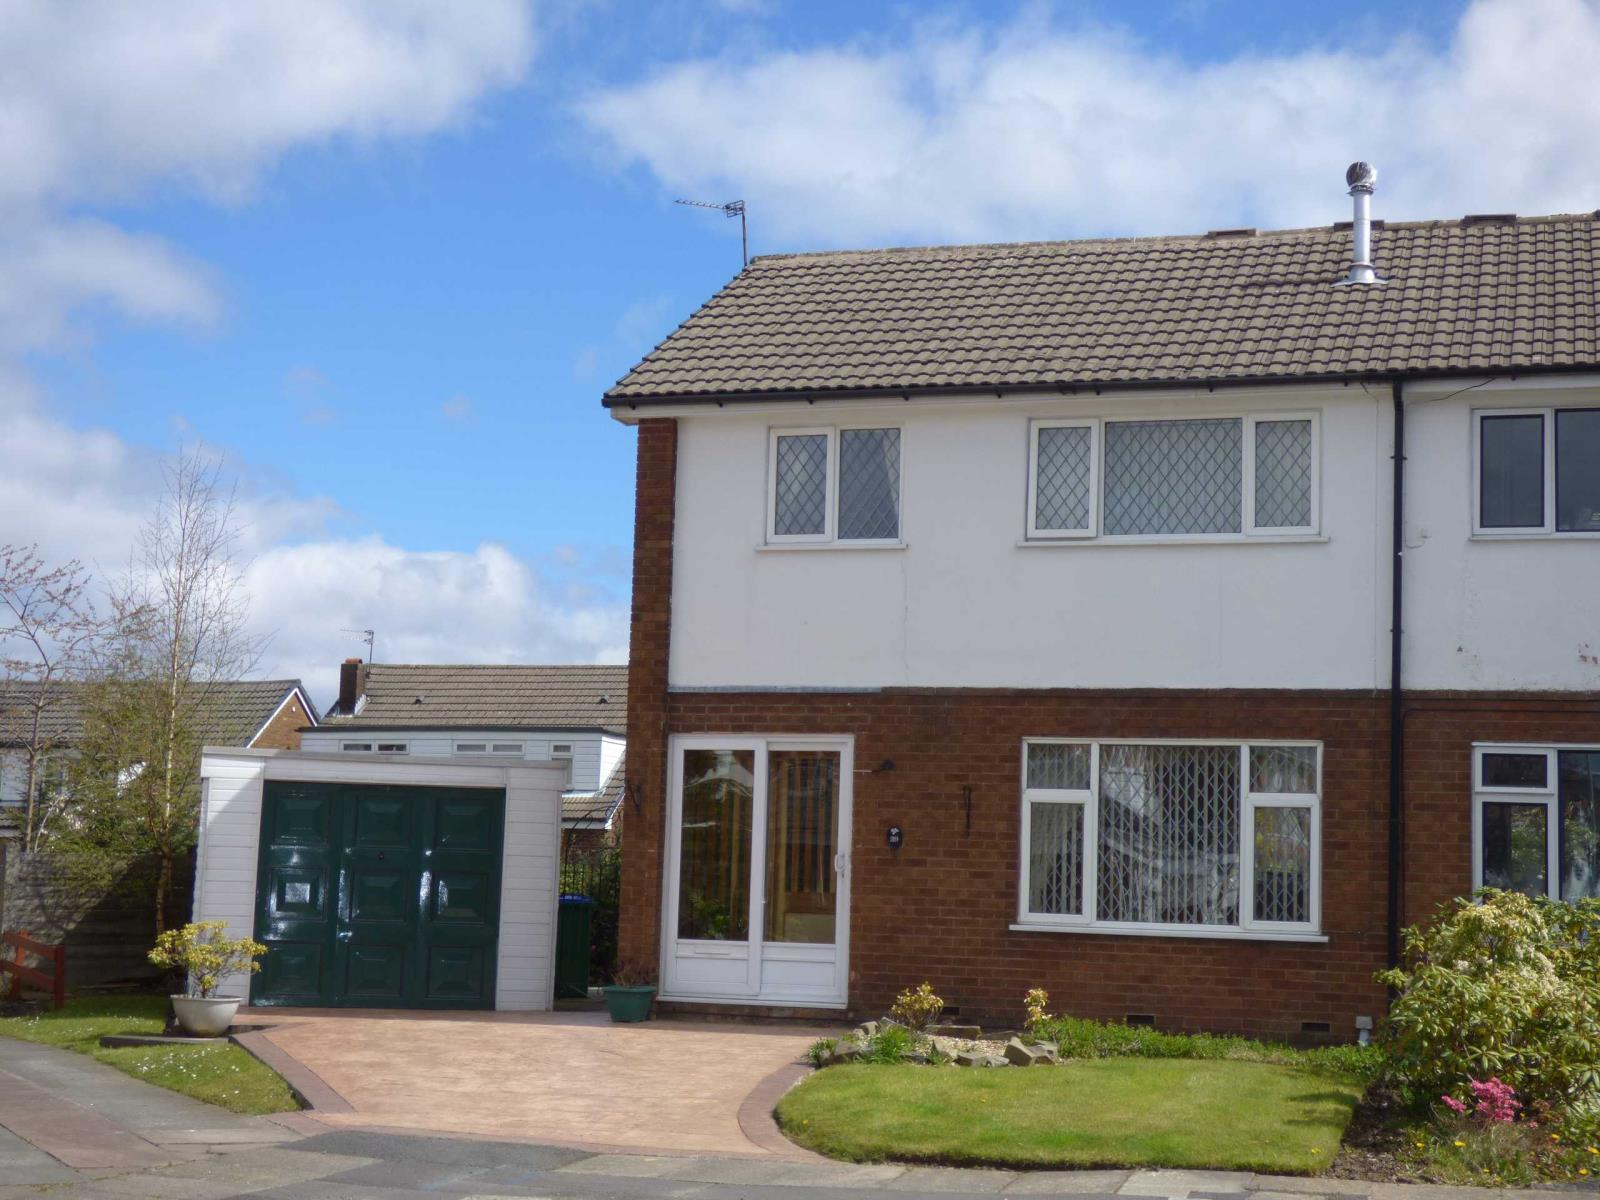 3 Bedrooms Semi Detached House for sale in Newbury Grove, Hopwood, Heywood, Lancashire, OL10